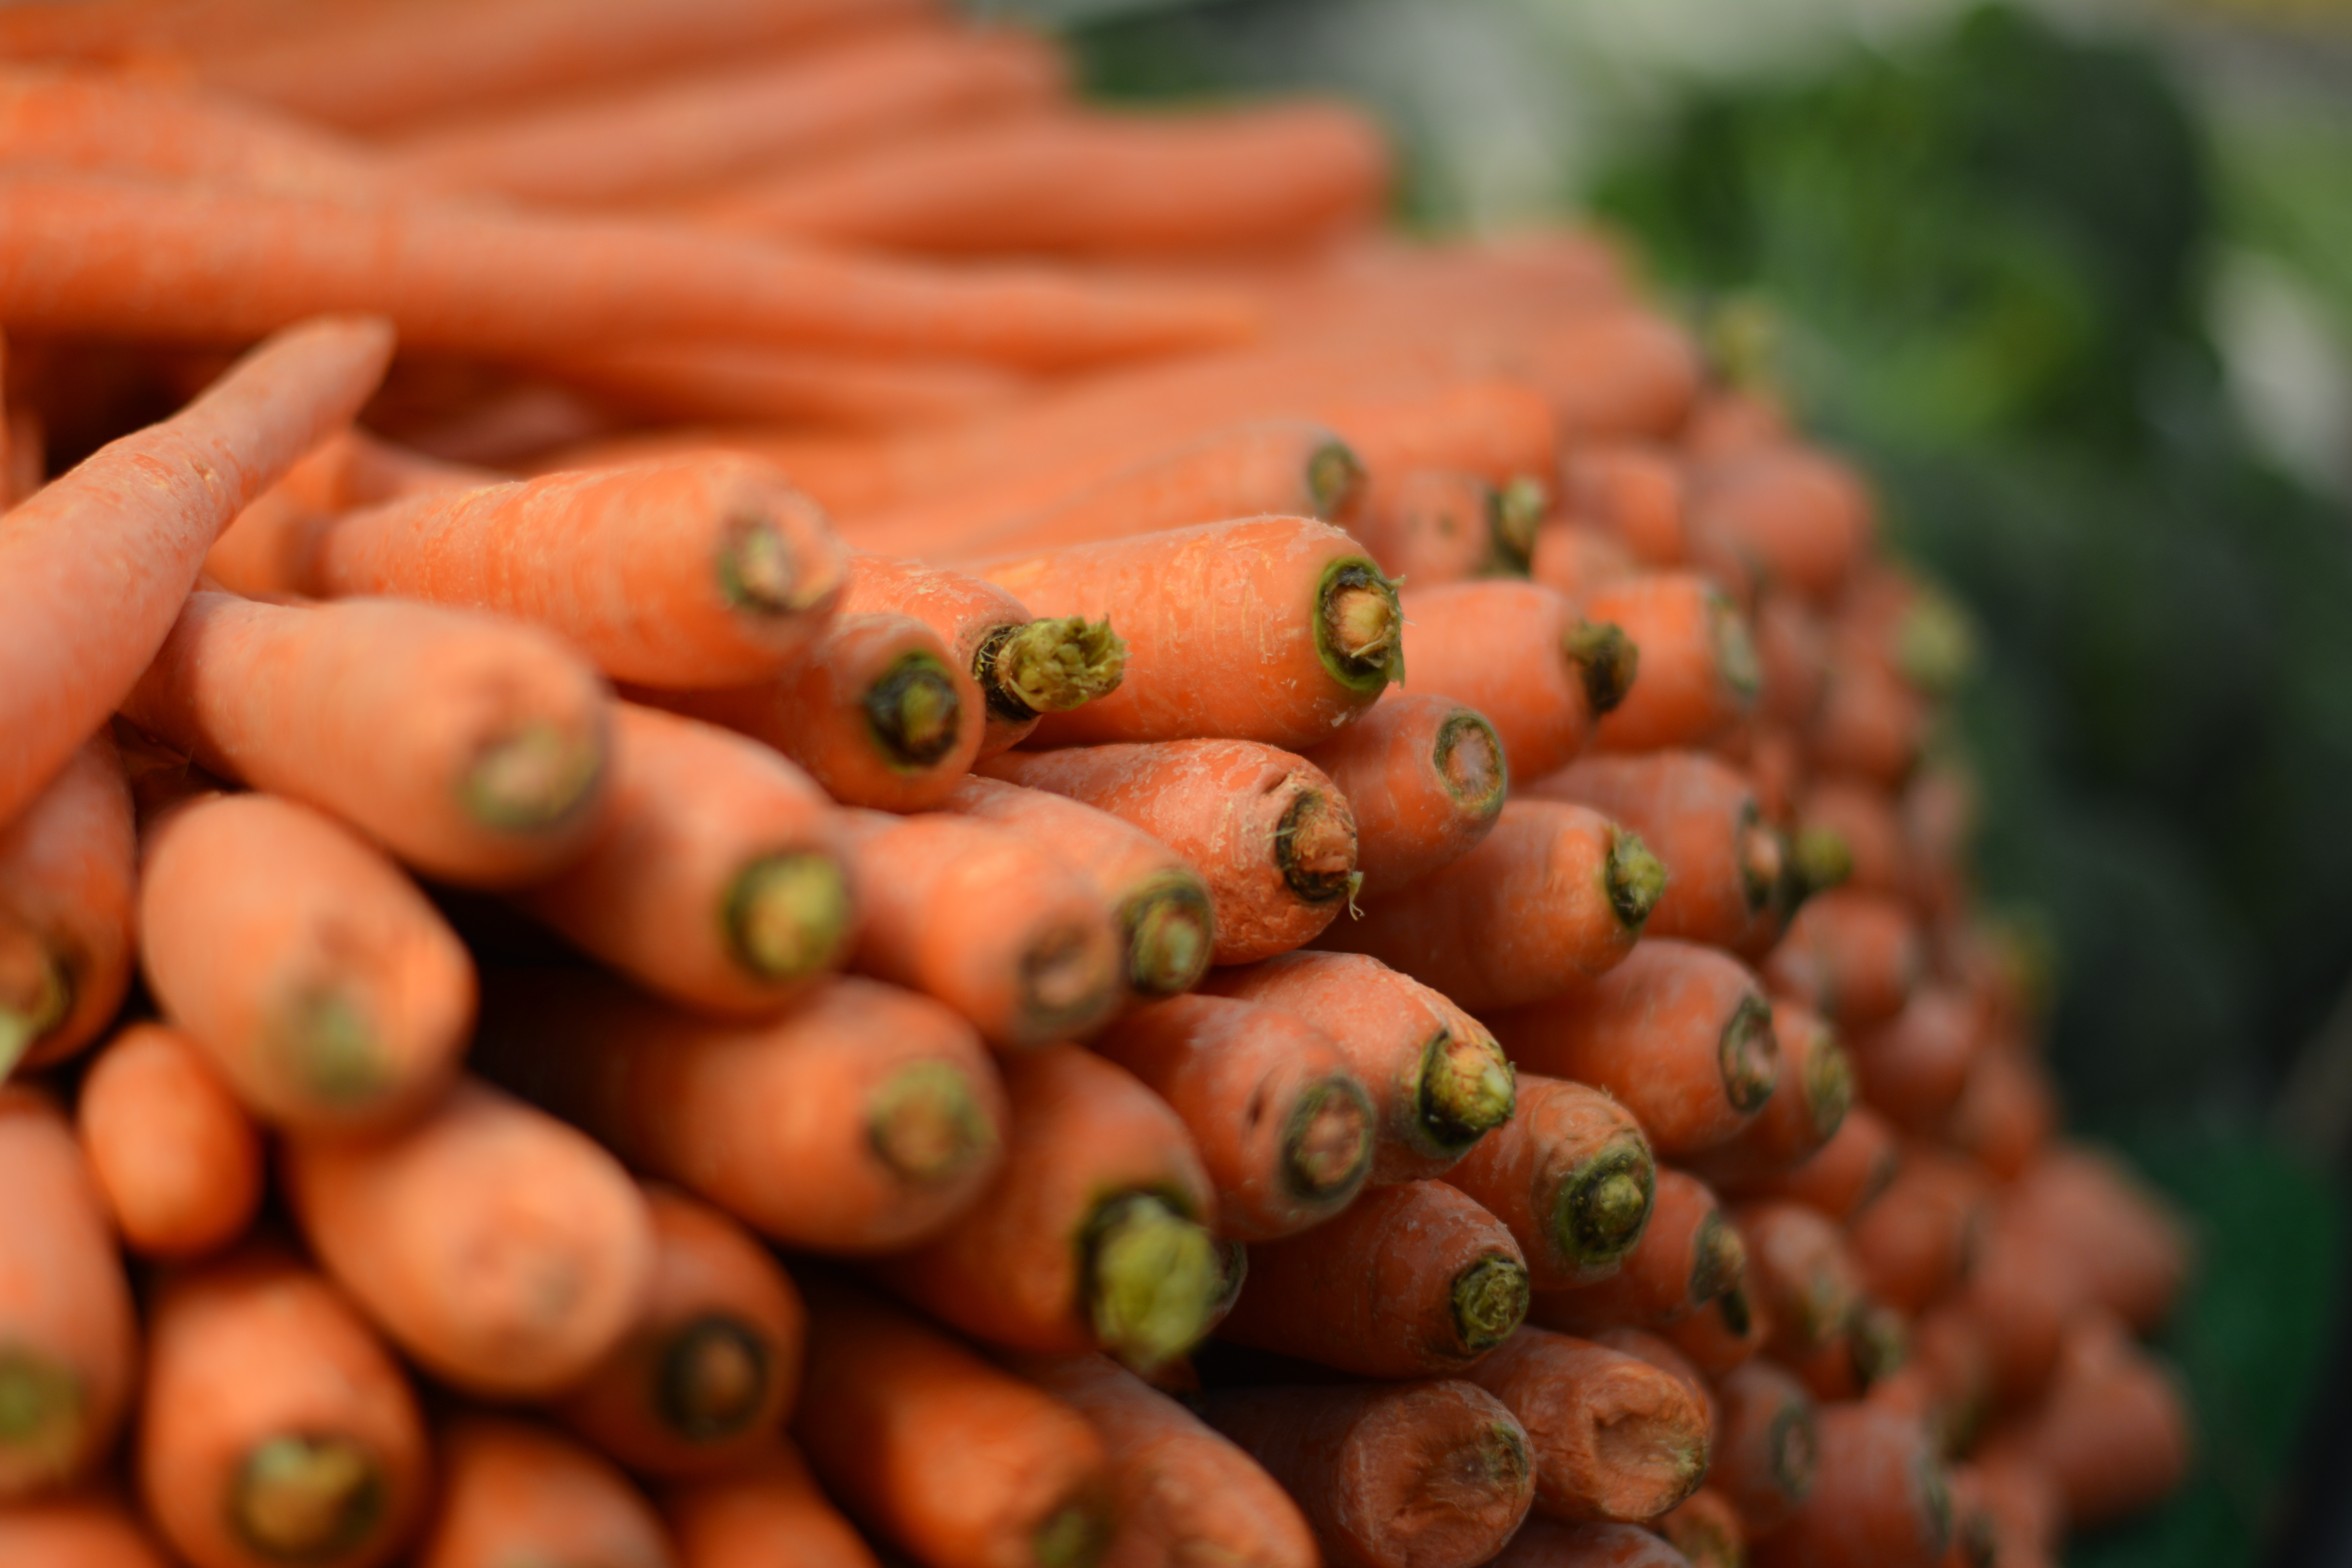 Eat raw carrots or steam them to preserve essential vitamins and minerals